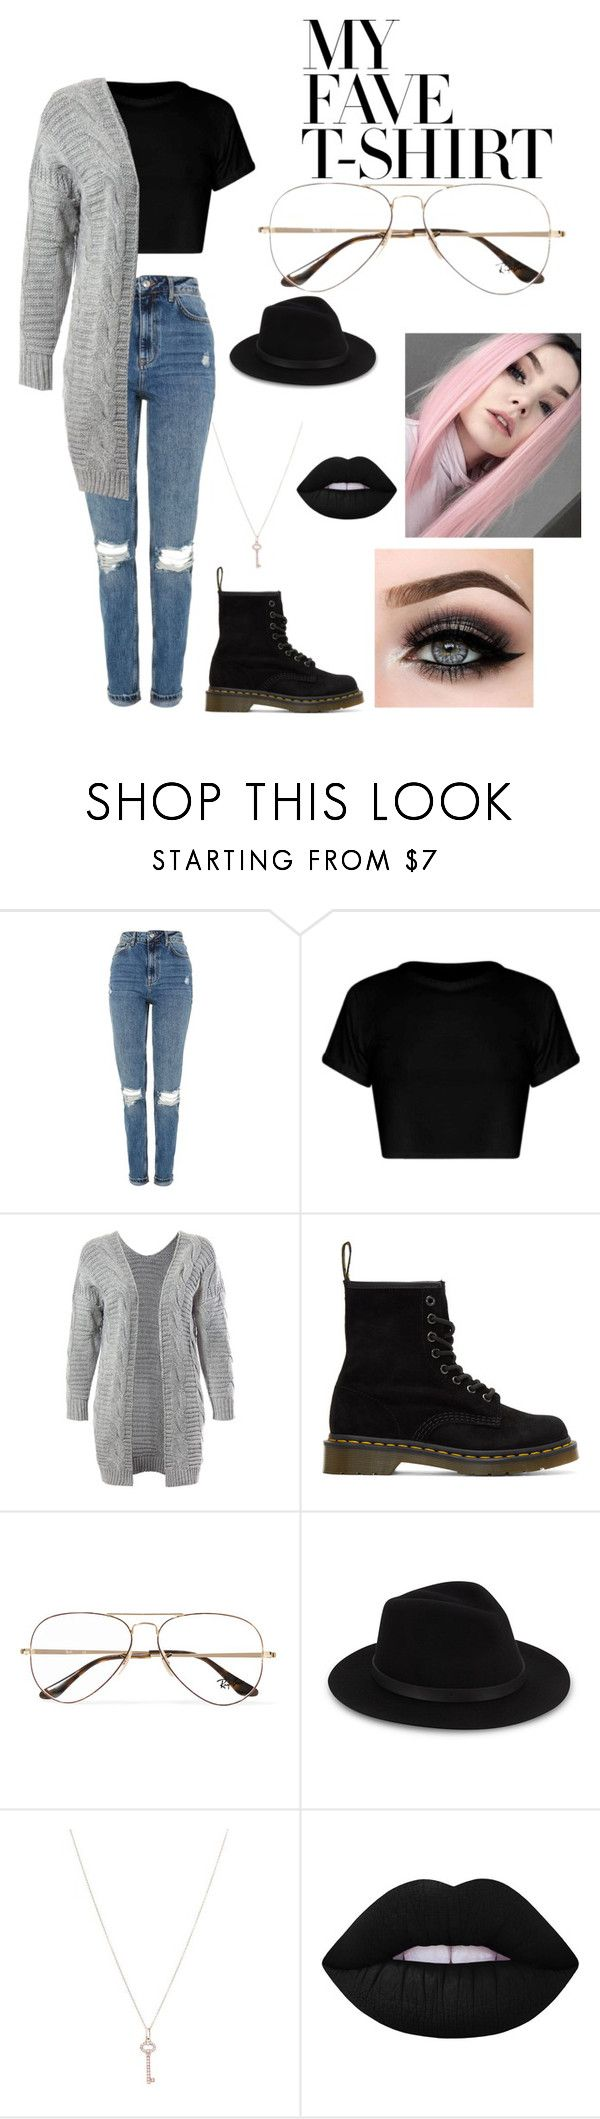 """Untitled #568"" by taco-bell-love ❤ liked on Polyvore featuring Topshop, Sans Souci, Dr. Martens, Ray-Ban, Saks Fifth Avenue, Tiffany & Co., Lime Crime, ASAP and MyFaveTshirt"